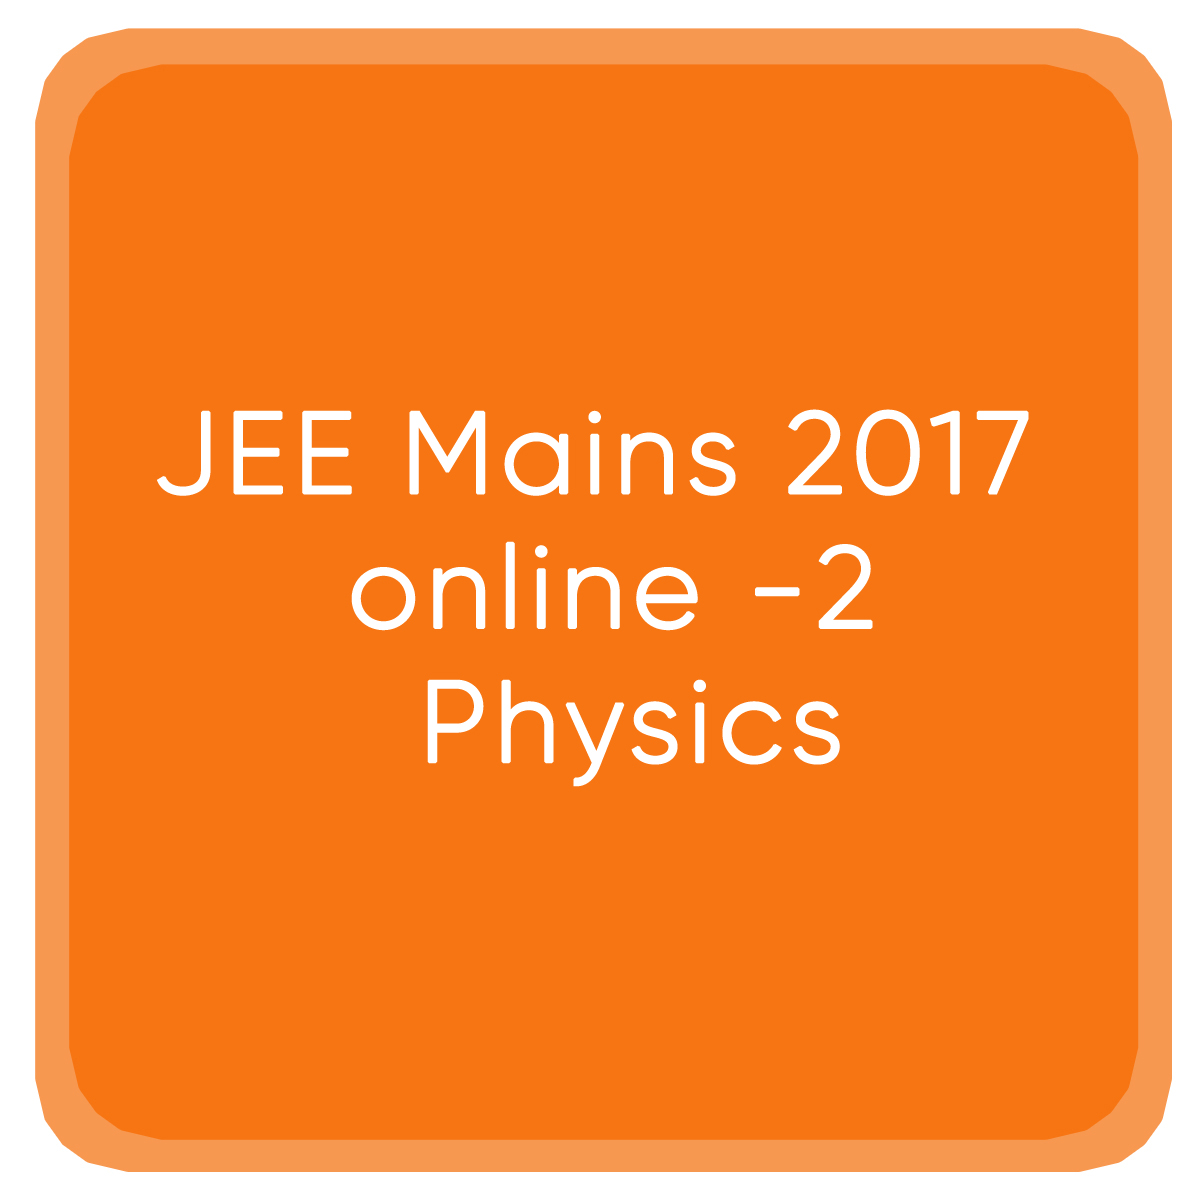 JEE Mains 2017 online -2 Physics